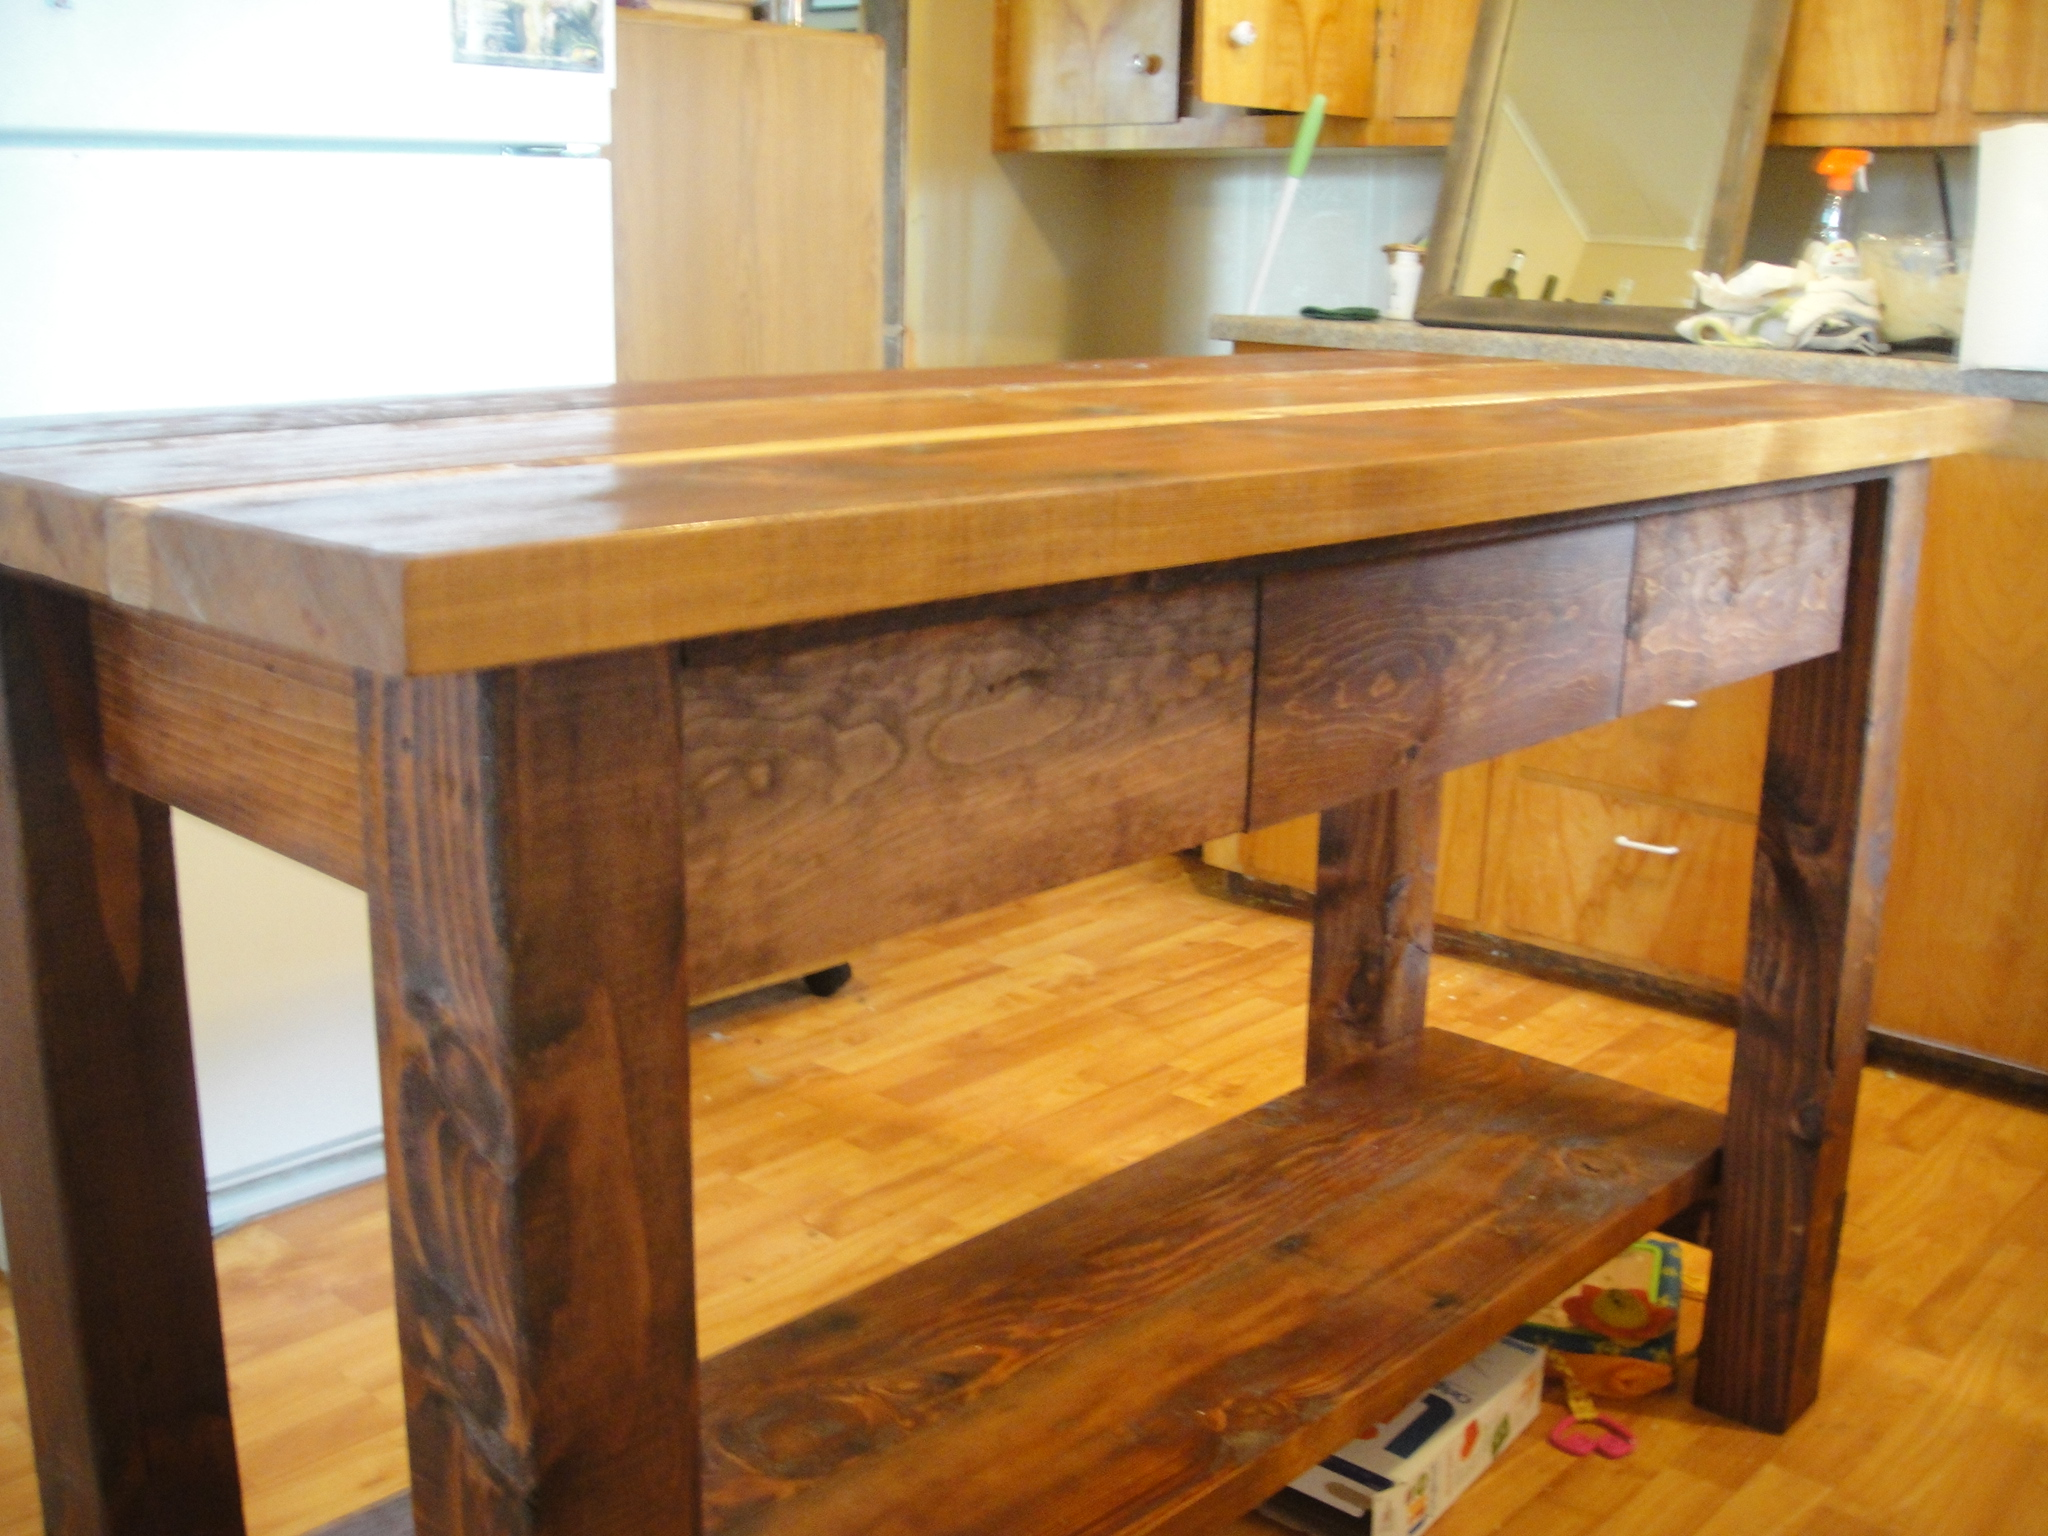 Diy Kitchen Island Design Plans Ana White Kitchen Island From Reclaimed Wood Diy Projects